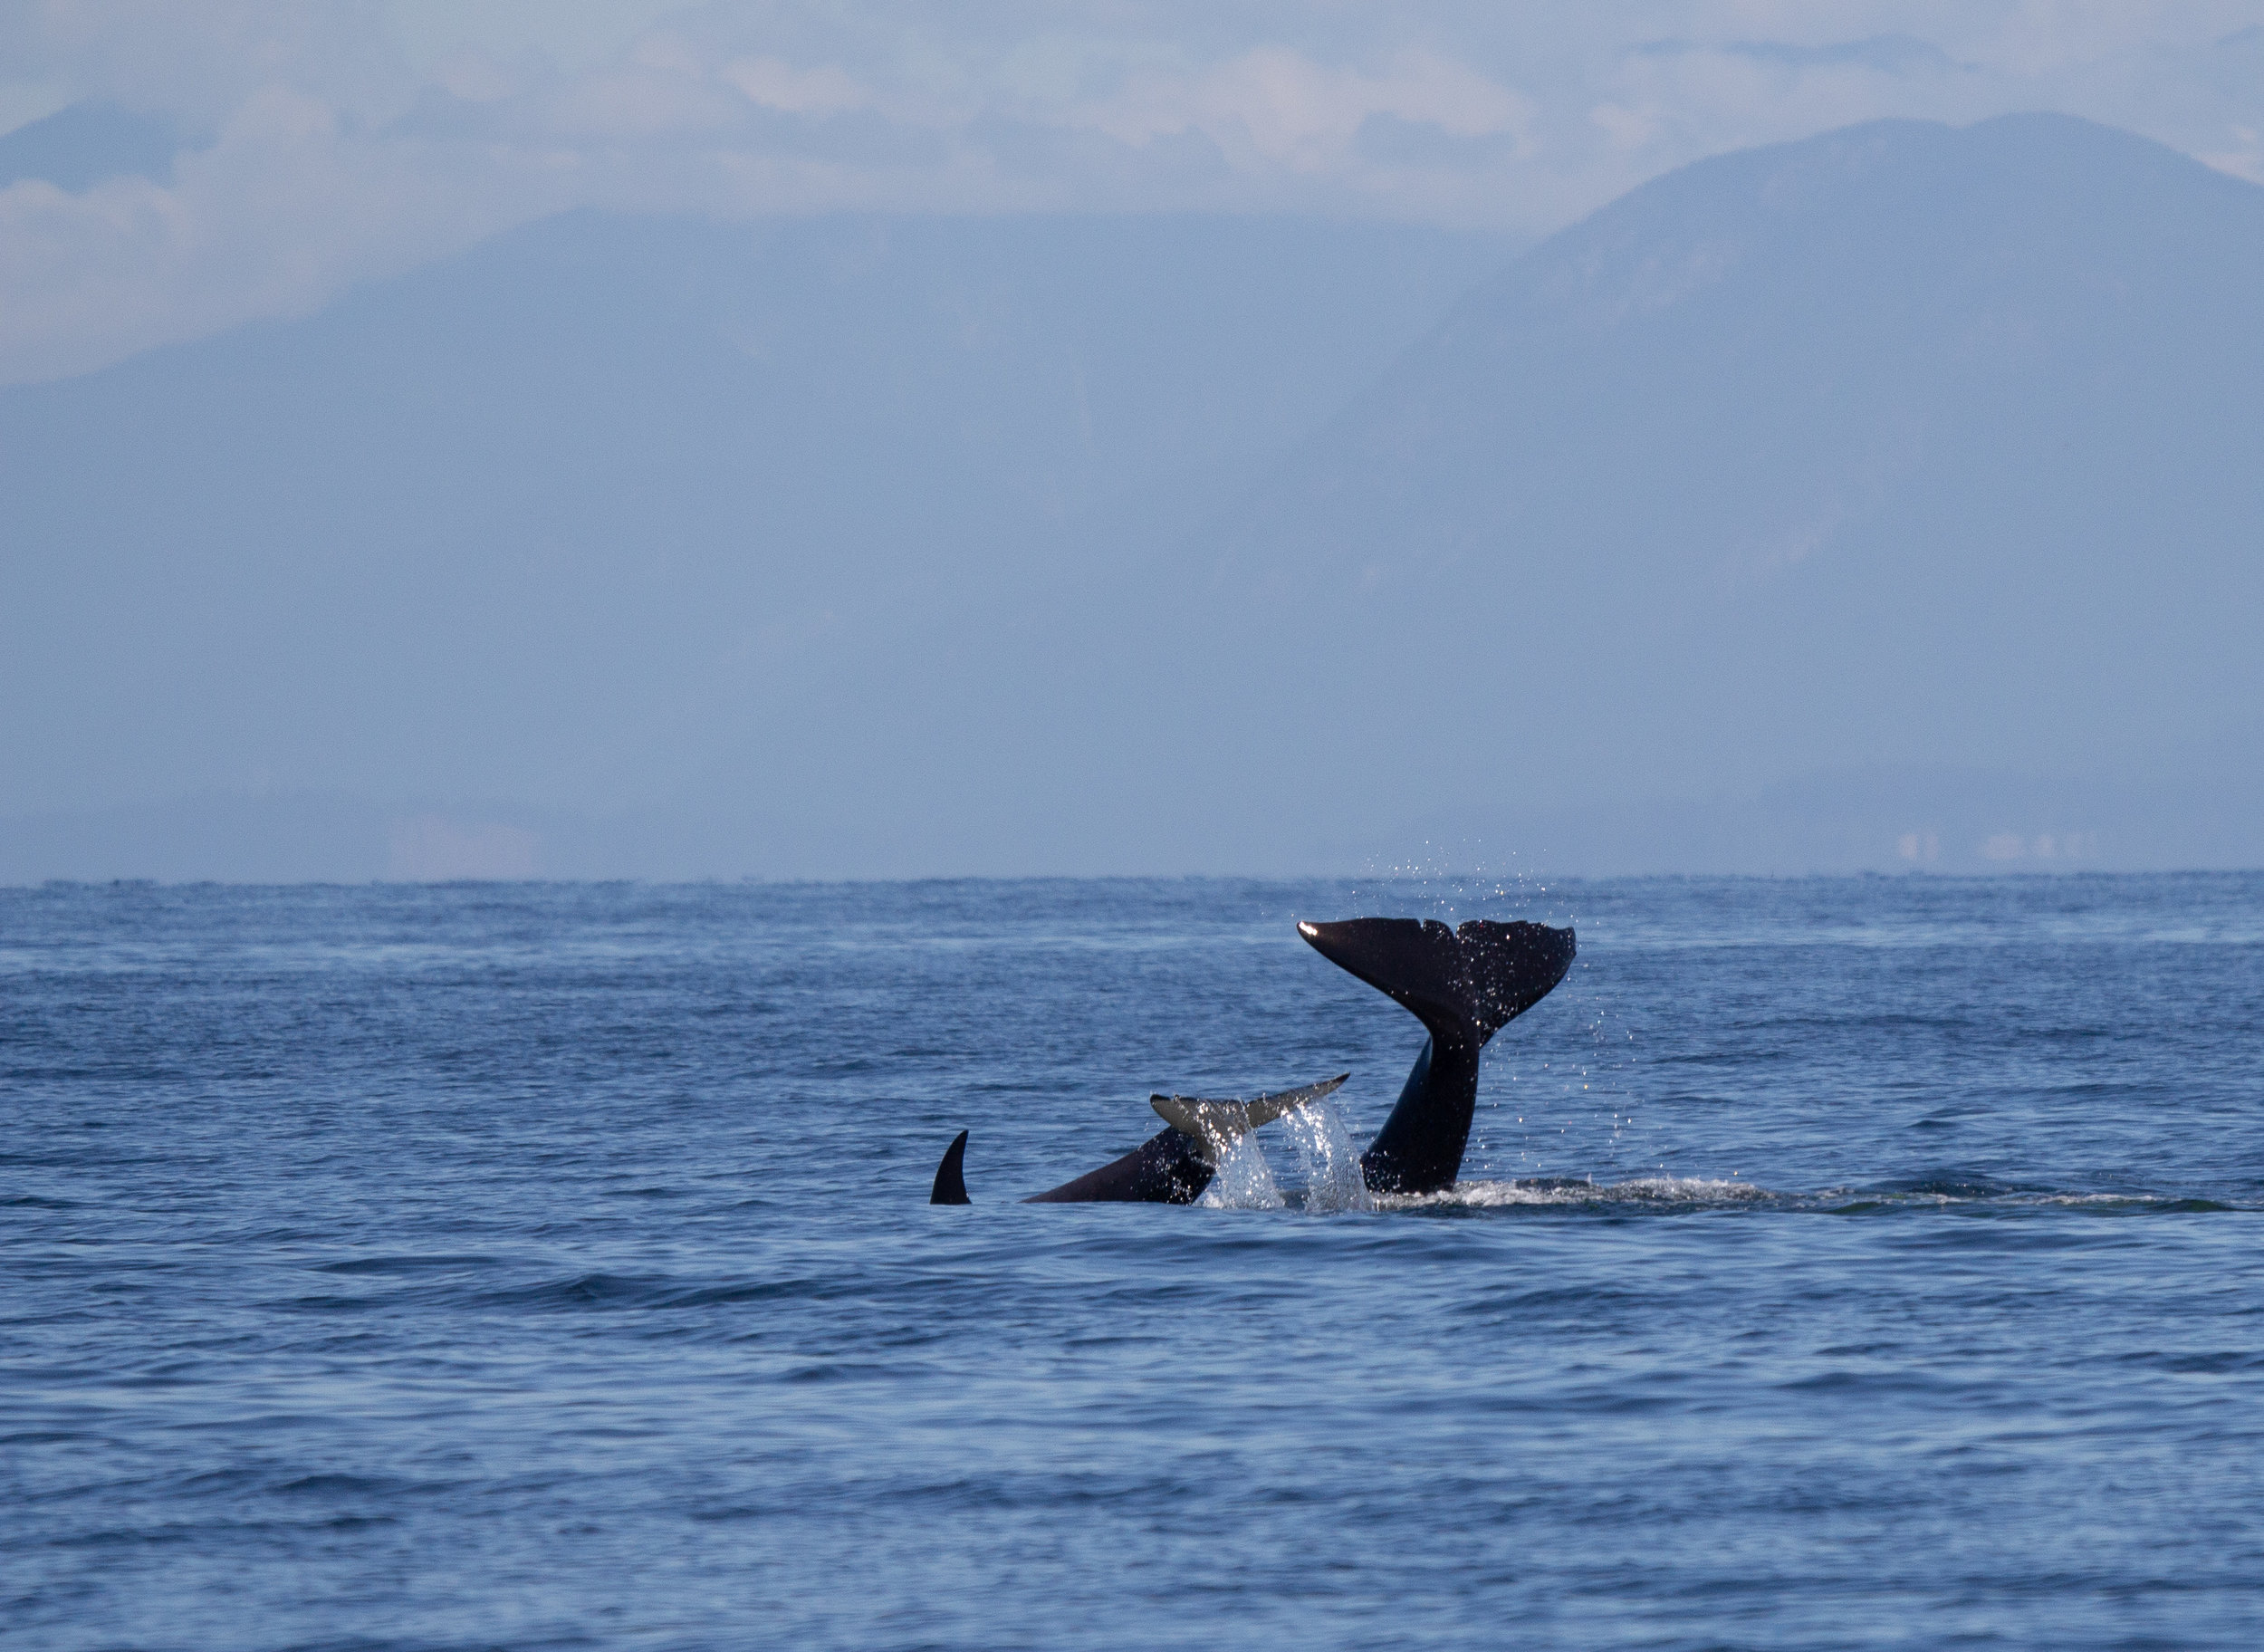 Fluke waves from the orcas. Notice the newborn calf joining in on the fun! Photo by Natalie Reichenbacher.